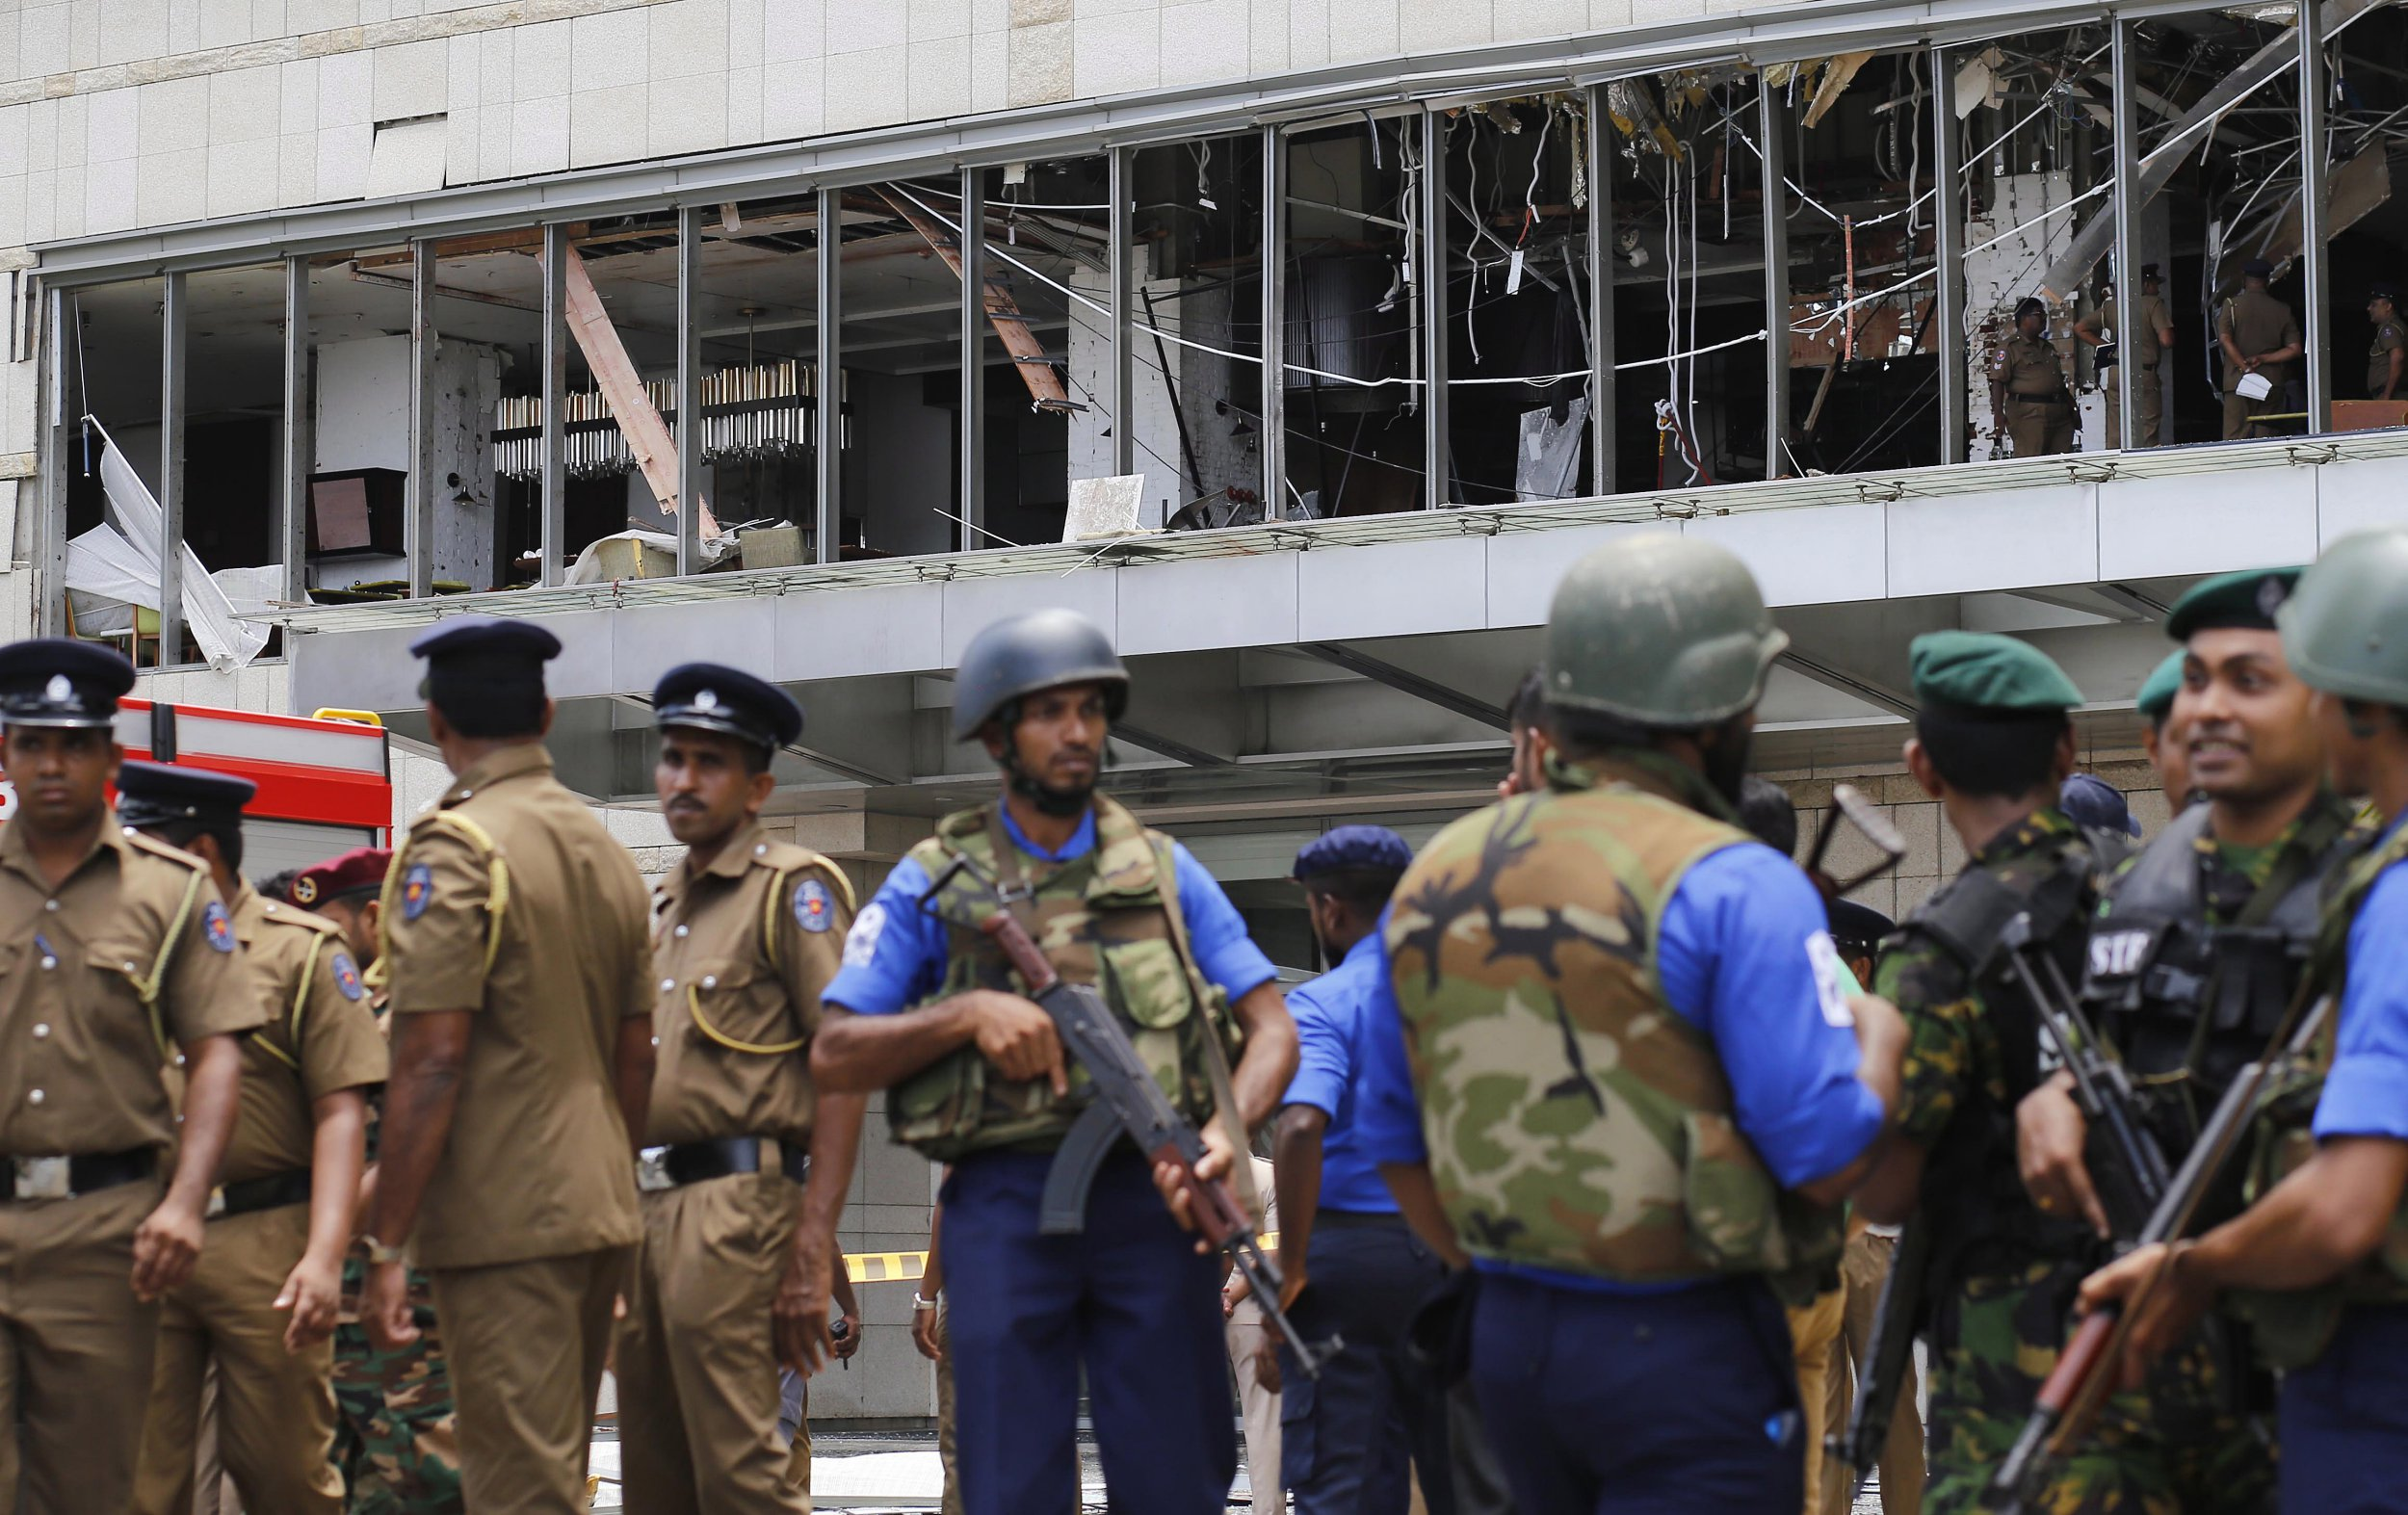 epa07519448 Police and confidence crew mount gaurd after an blast strike Shangri-La Hotel in Colombo, Sri Lanka, 21 Apr 2019. According to news reports during slightest 138 people killed and over 400 harmed in a array of blasts during a Easter Sunday use during St Anthony's Church in Kochchikade, Shangri-La Hotel and Kingsbury Hotel with many some-more places. EPA/M.A. PUSHPA KUMARA